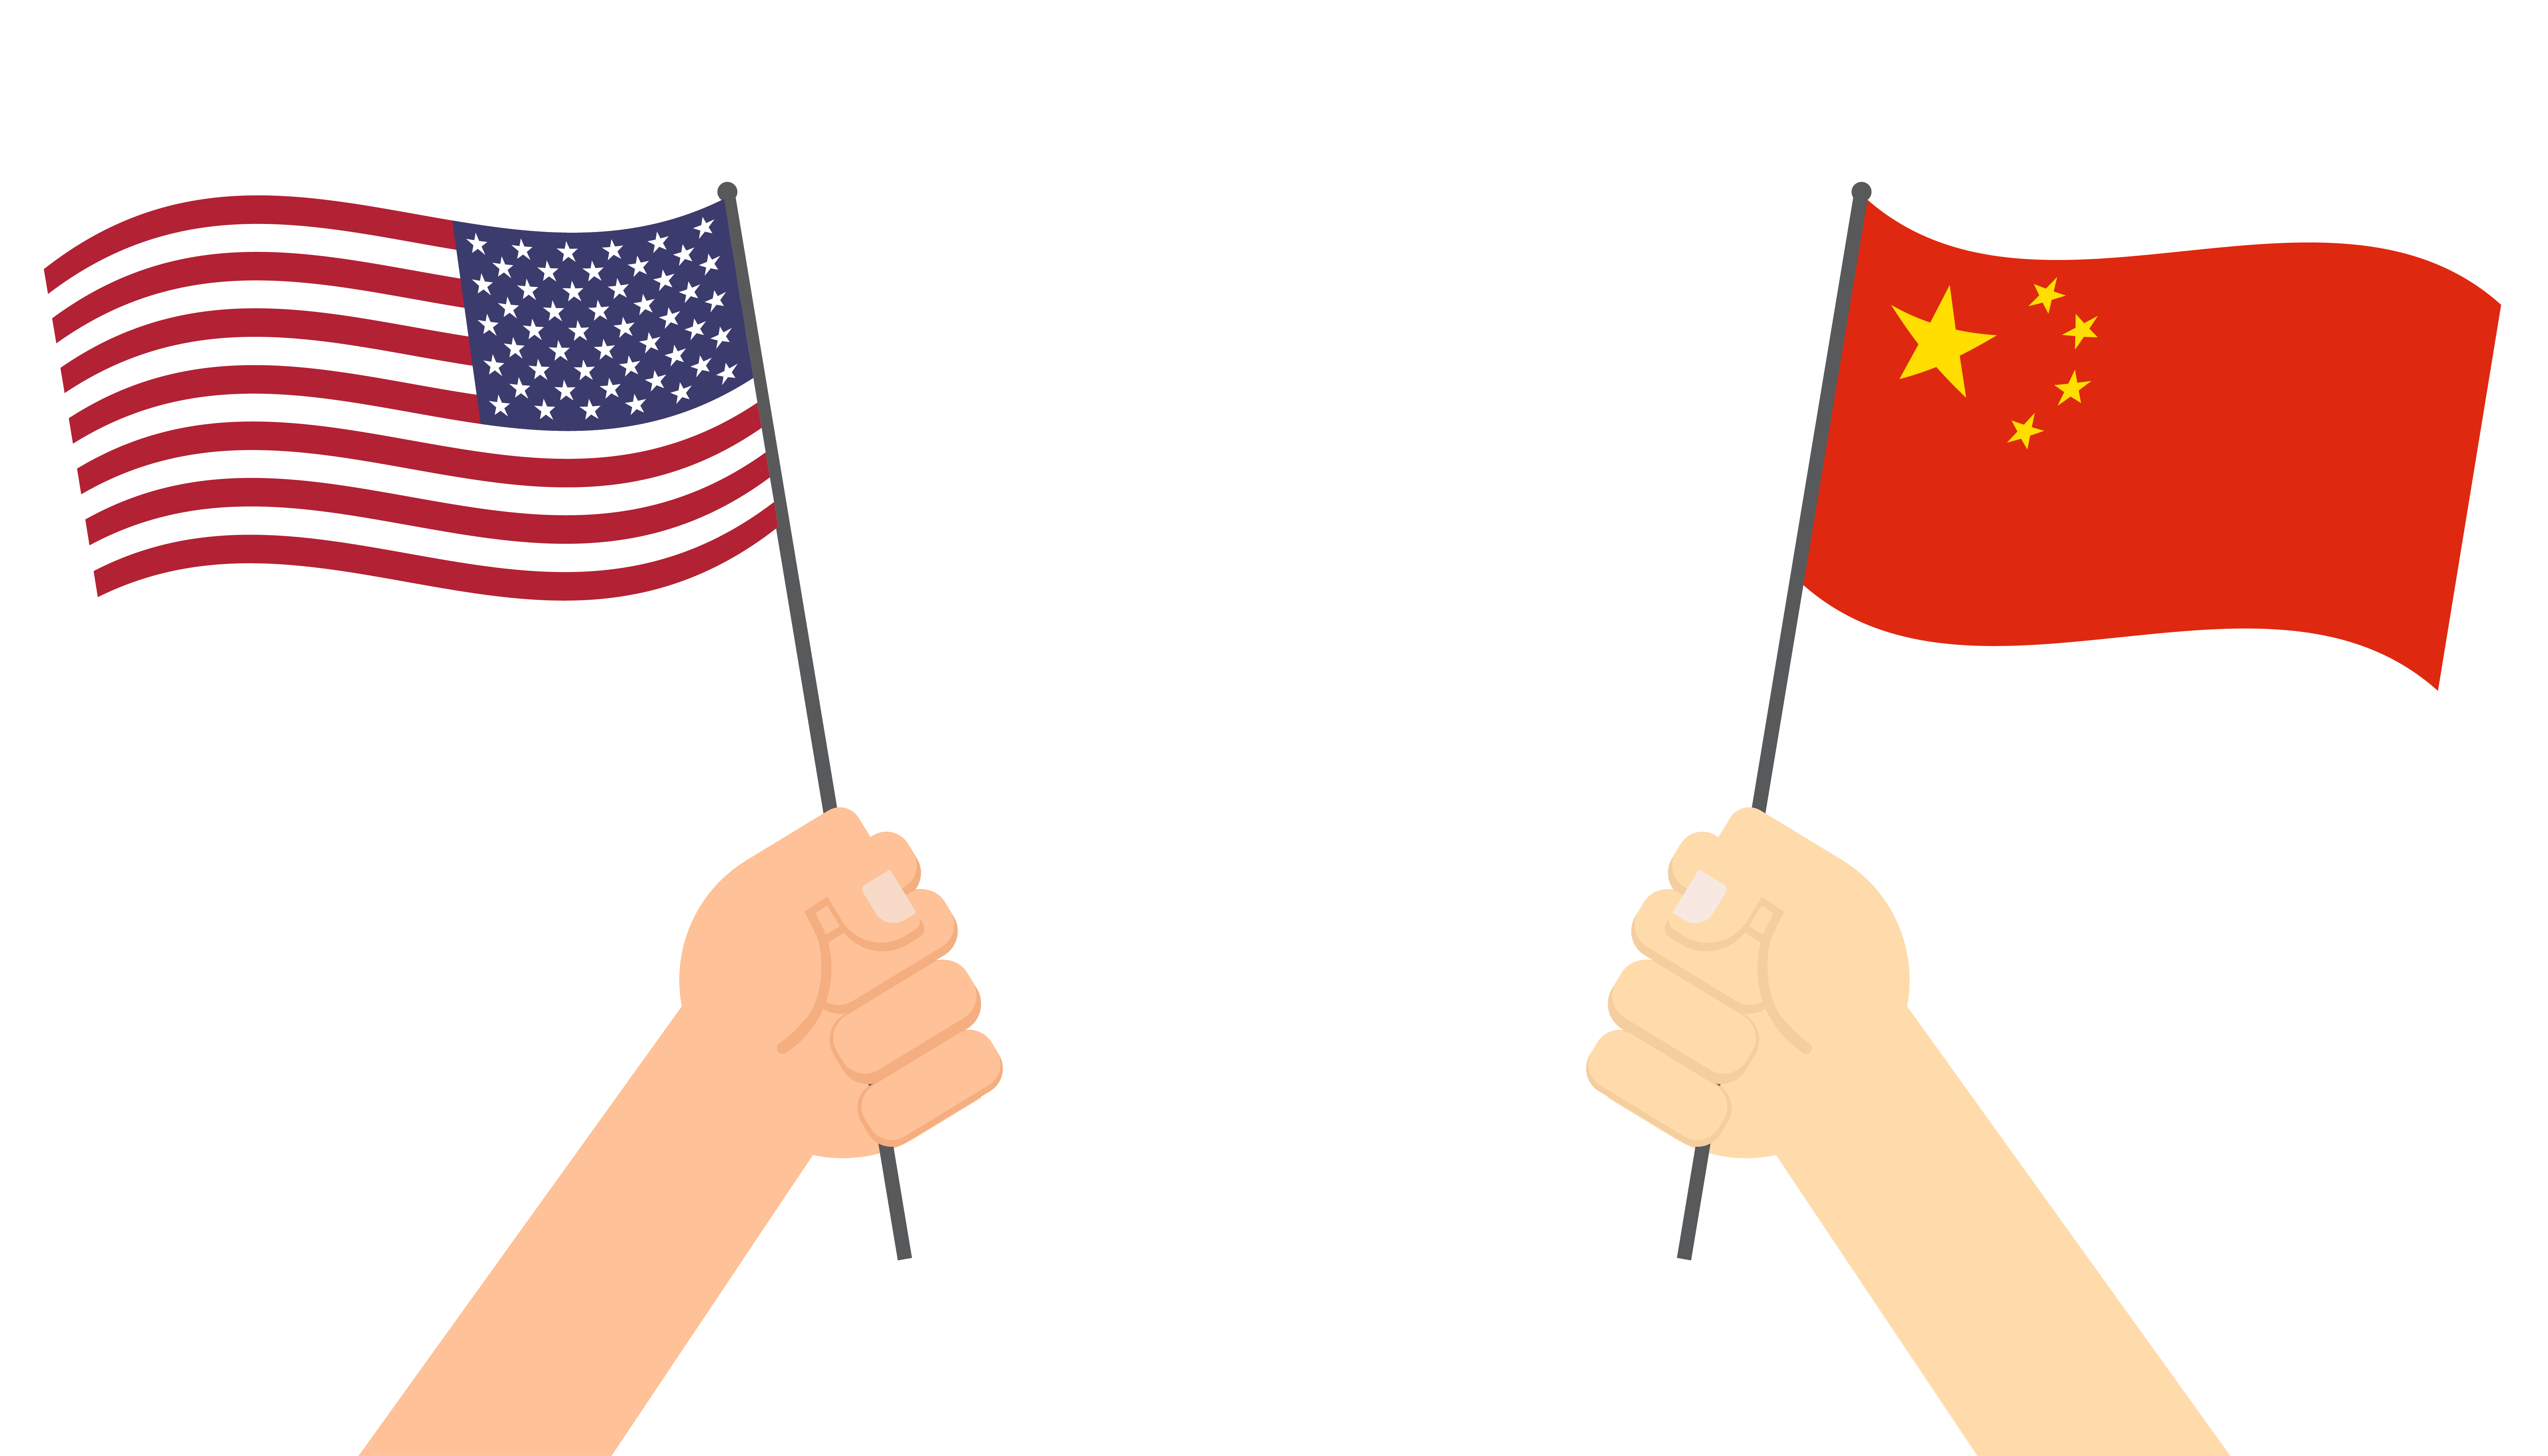 Hands Holding Flag Between Usa And China Face To Face For Competition Vector Illustration Download Free Vectors Clipart Graphics Vector Art